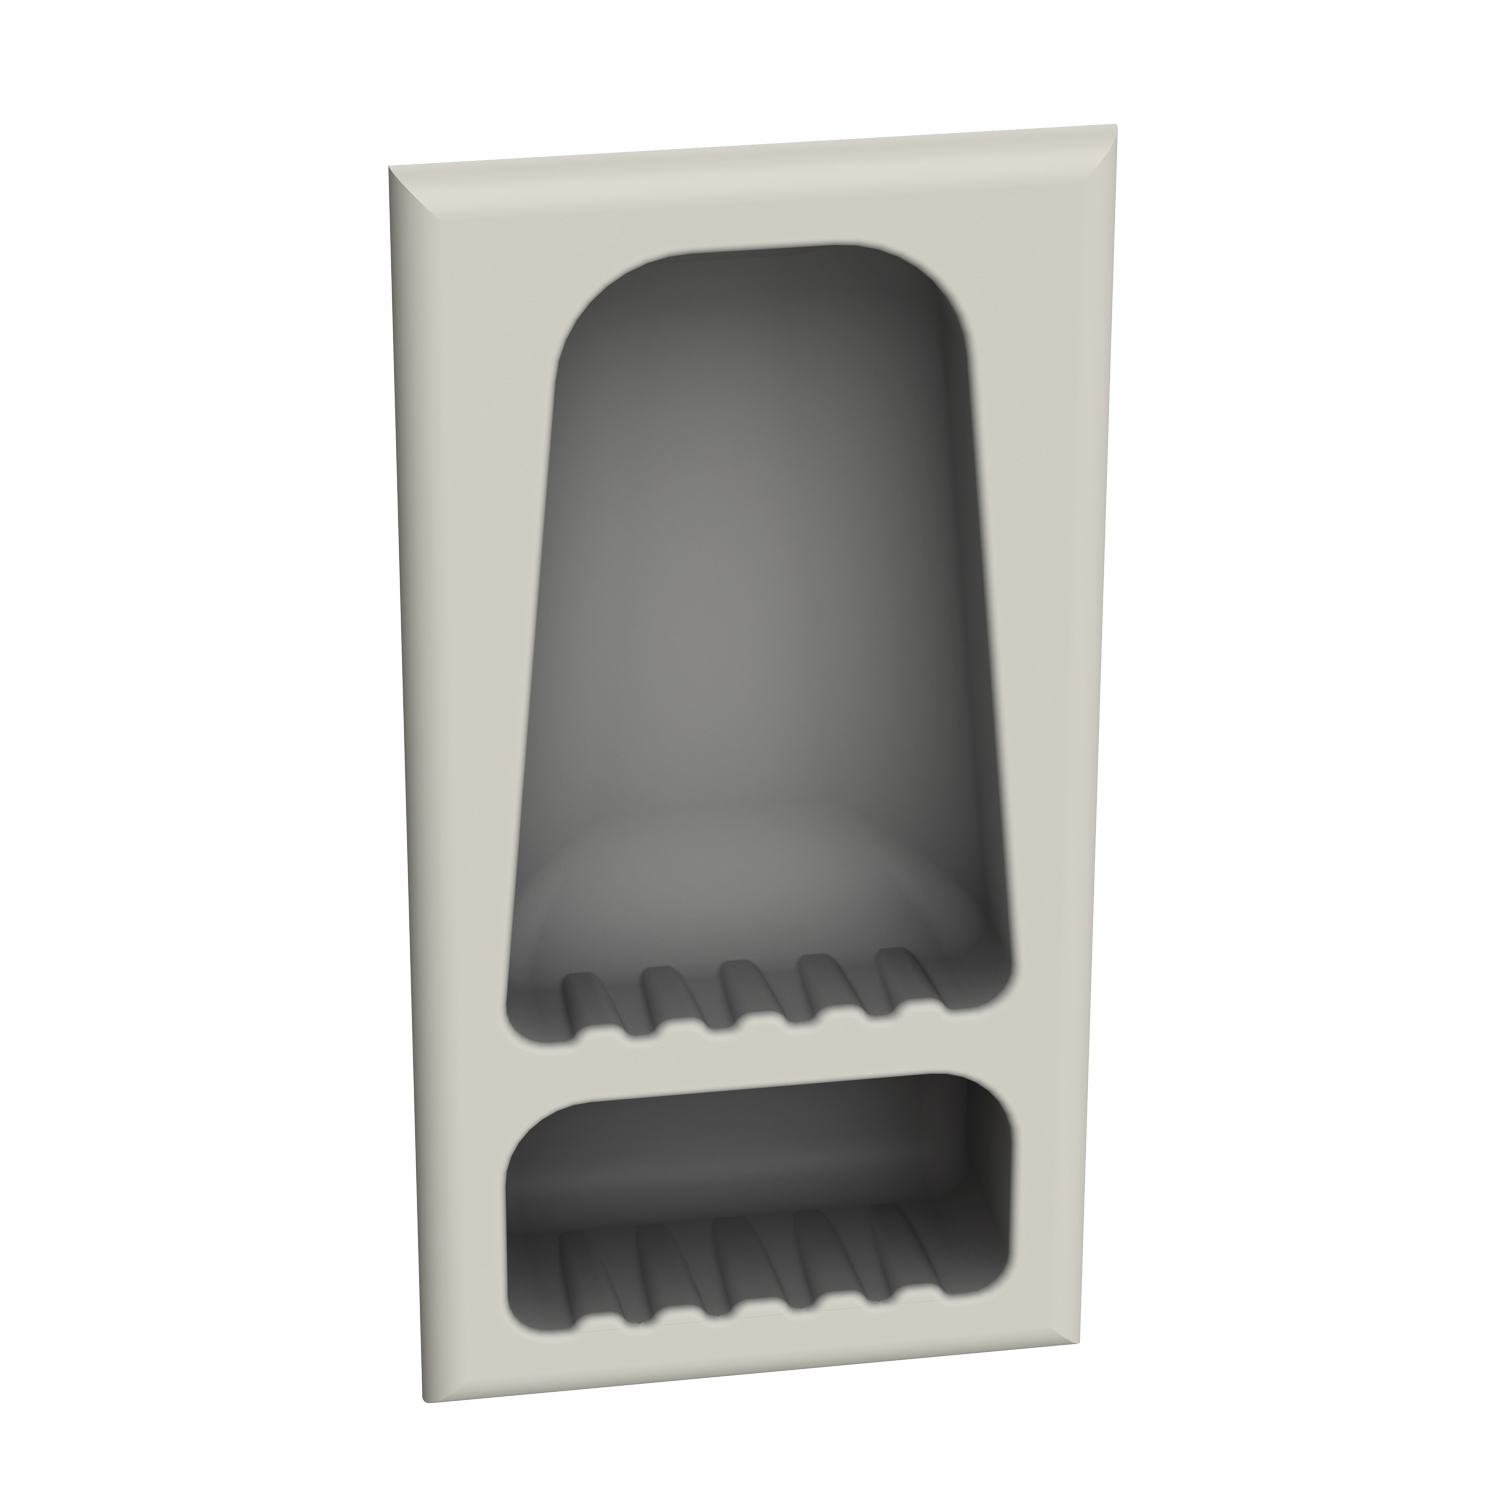 Large recessed shower caddy for commercial showers